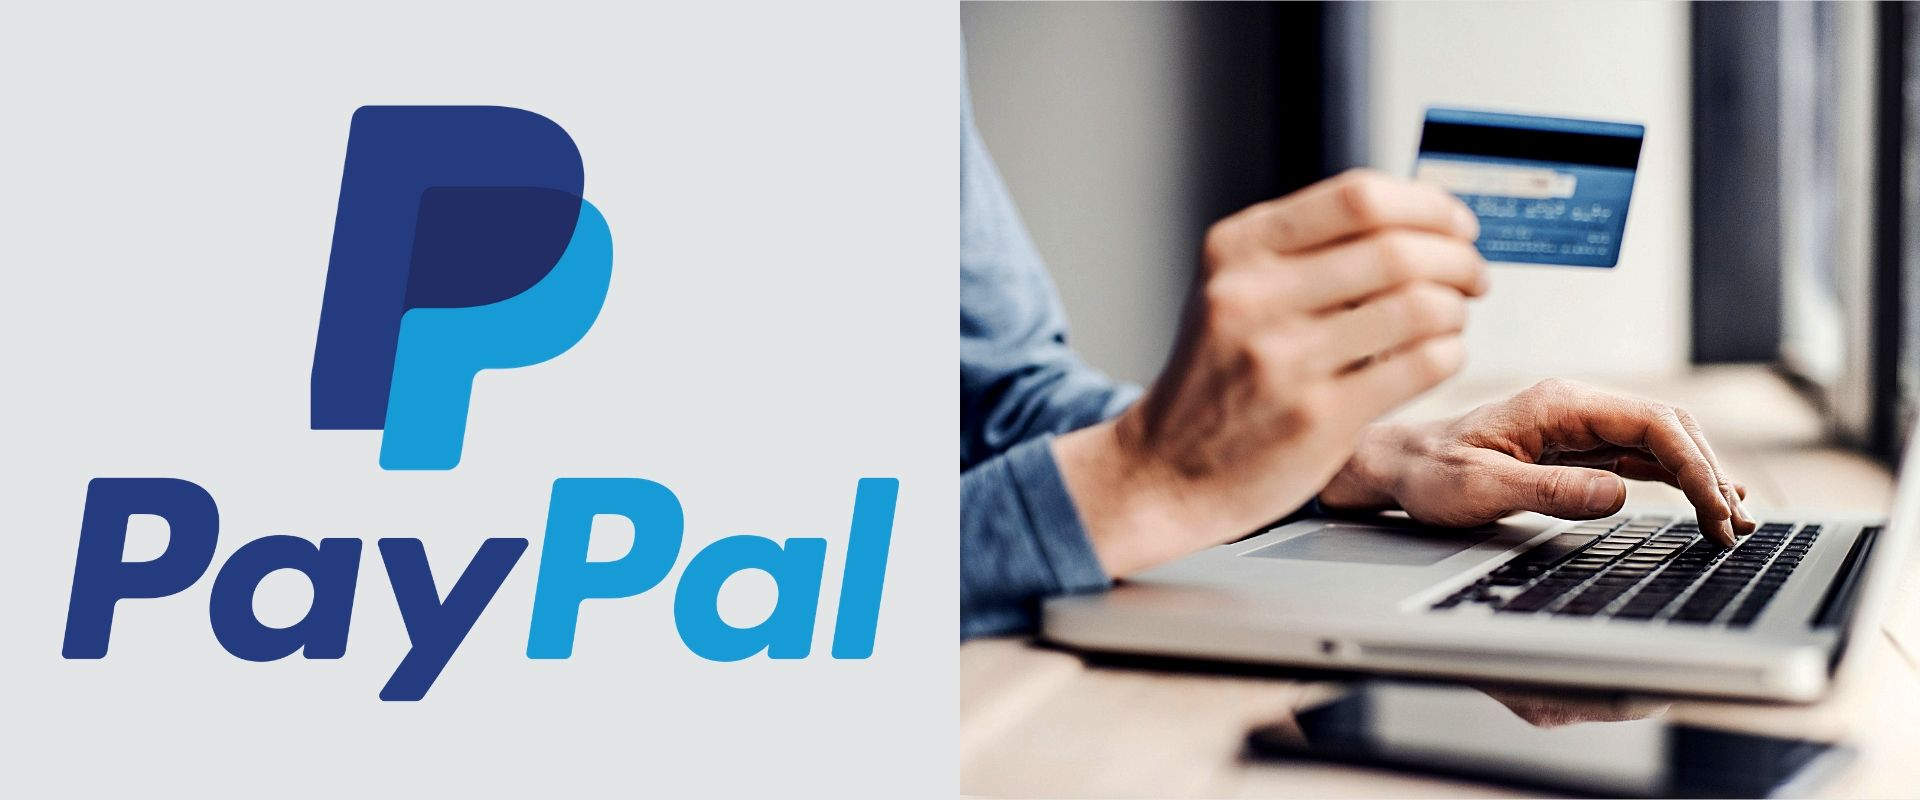 PayPal ICS Group Security Ireland Page Banner